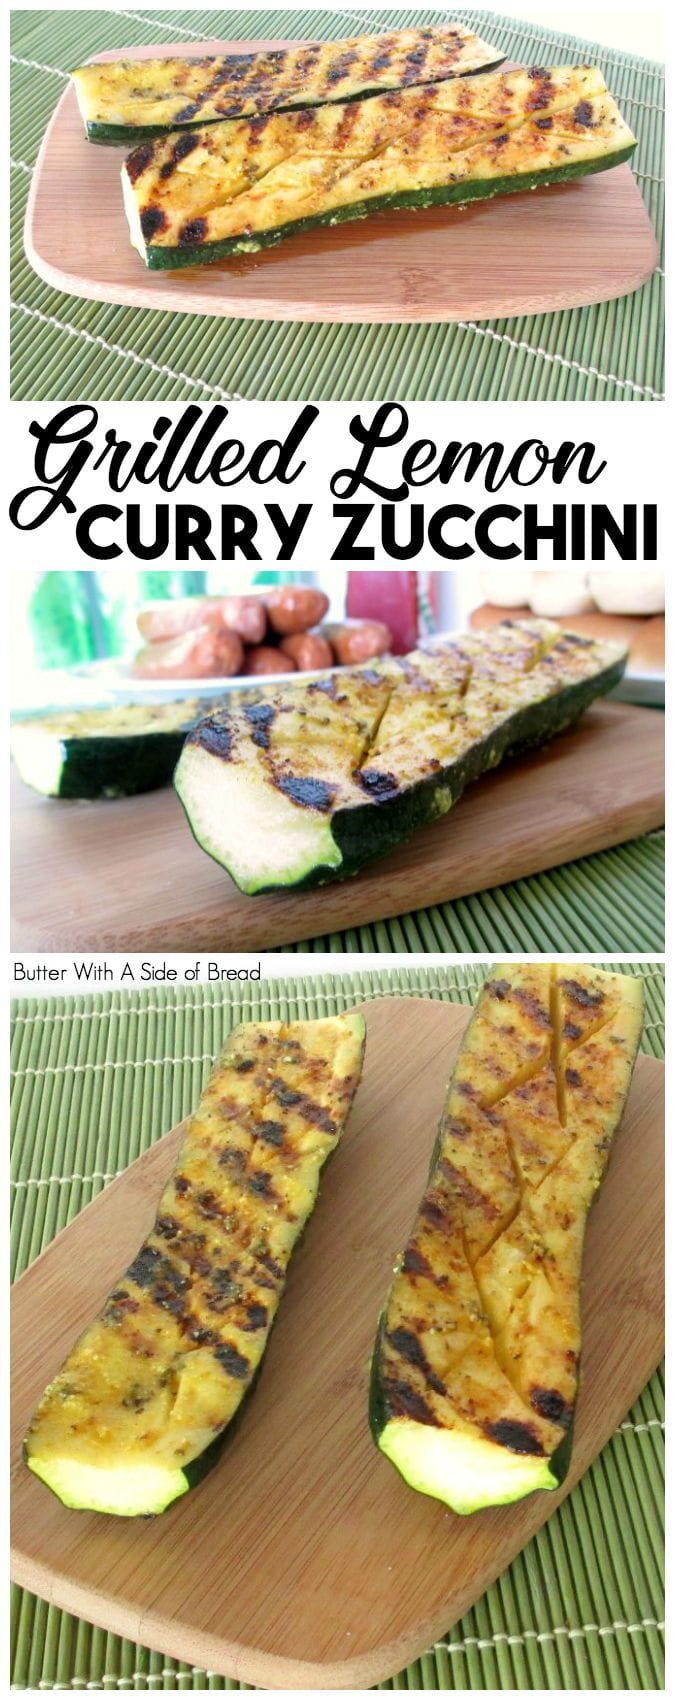 how to cook zucchini on the grill